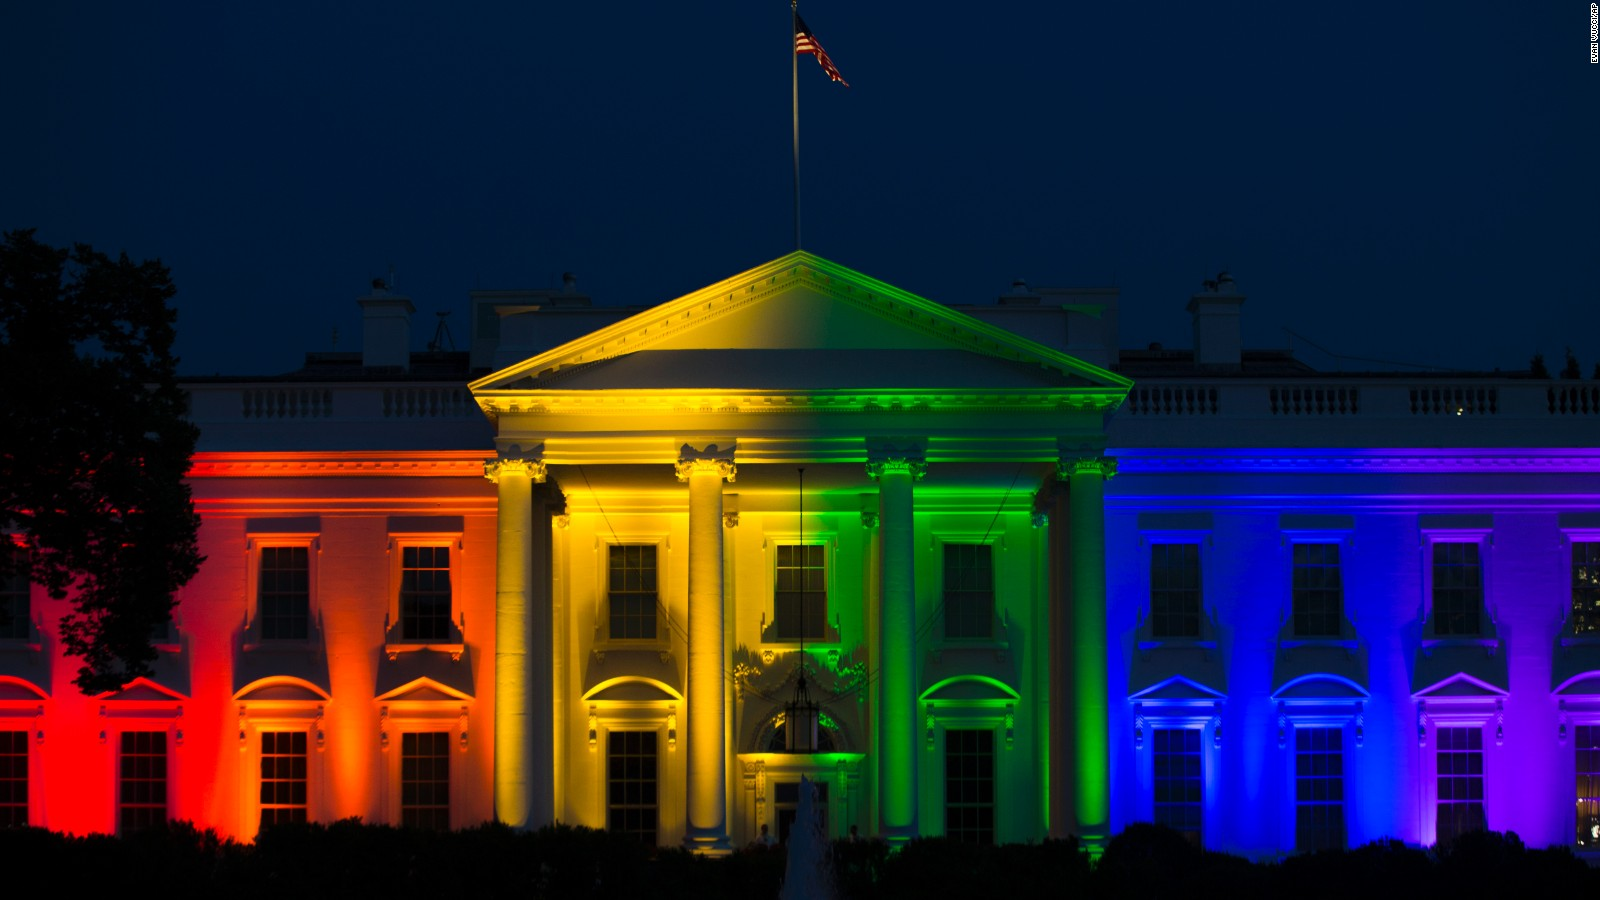 rainbow-white-house-full-169